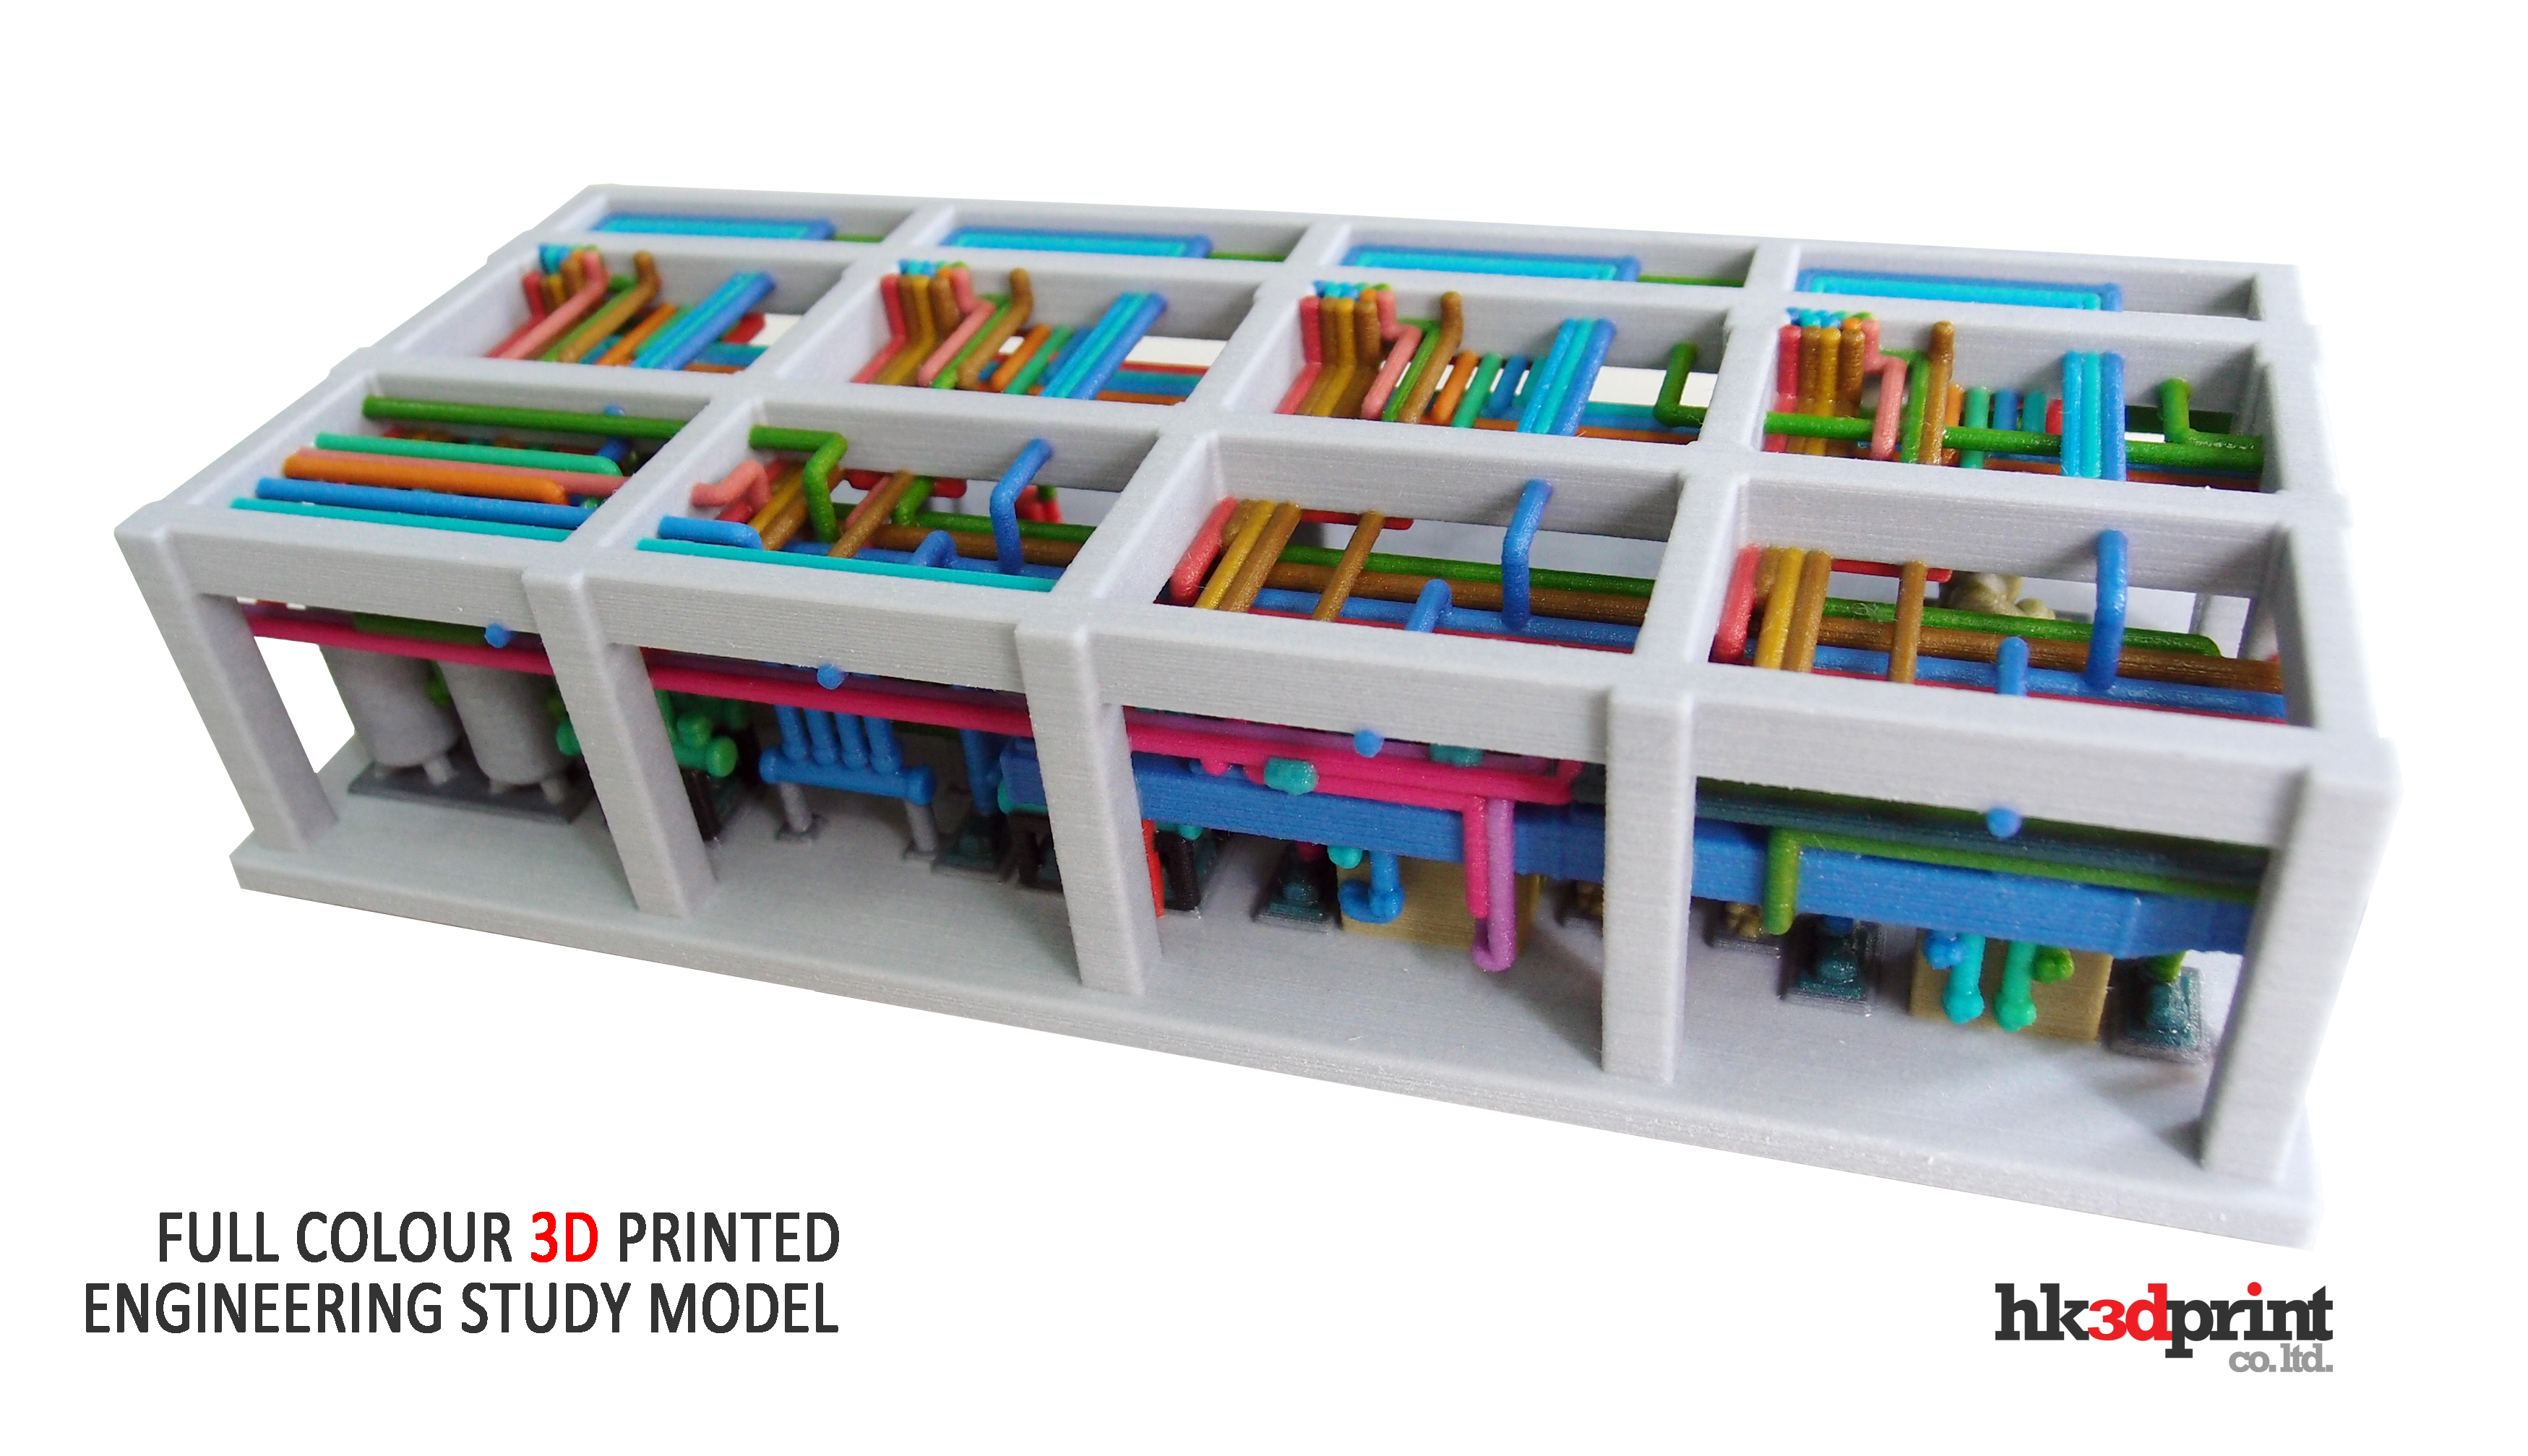 product and process evaluation of huxley 3d printer An ordbot quantum 3d printer  (1986) digital press (1993) v t e additive manufacturing or 3d printing[1] is a process of making a three-dimensional solid object of .